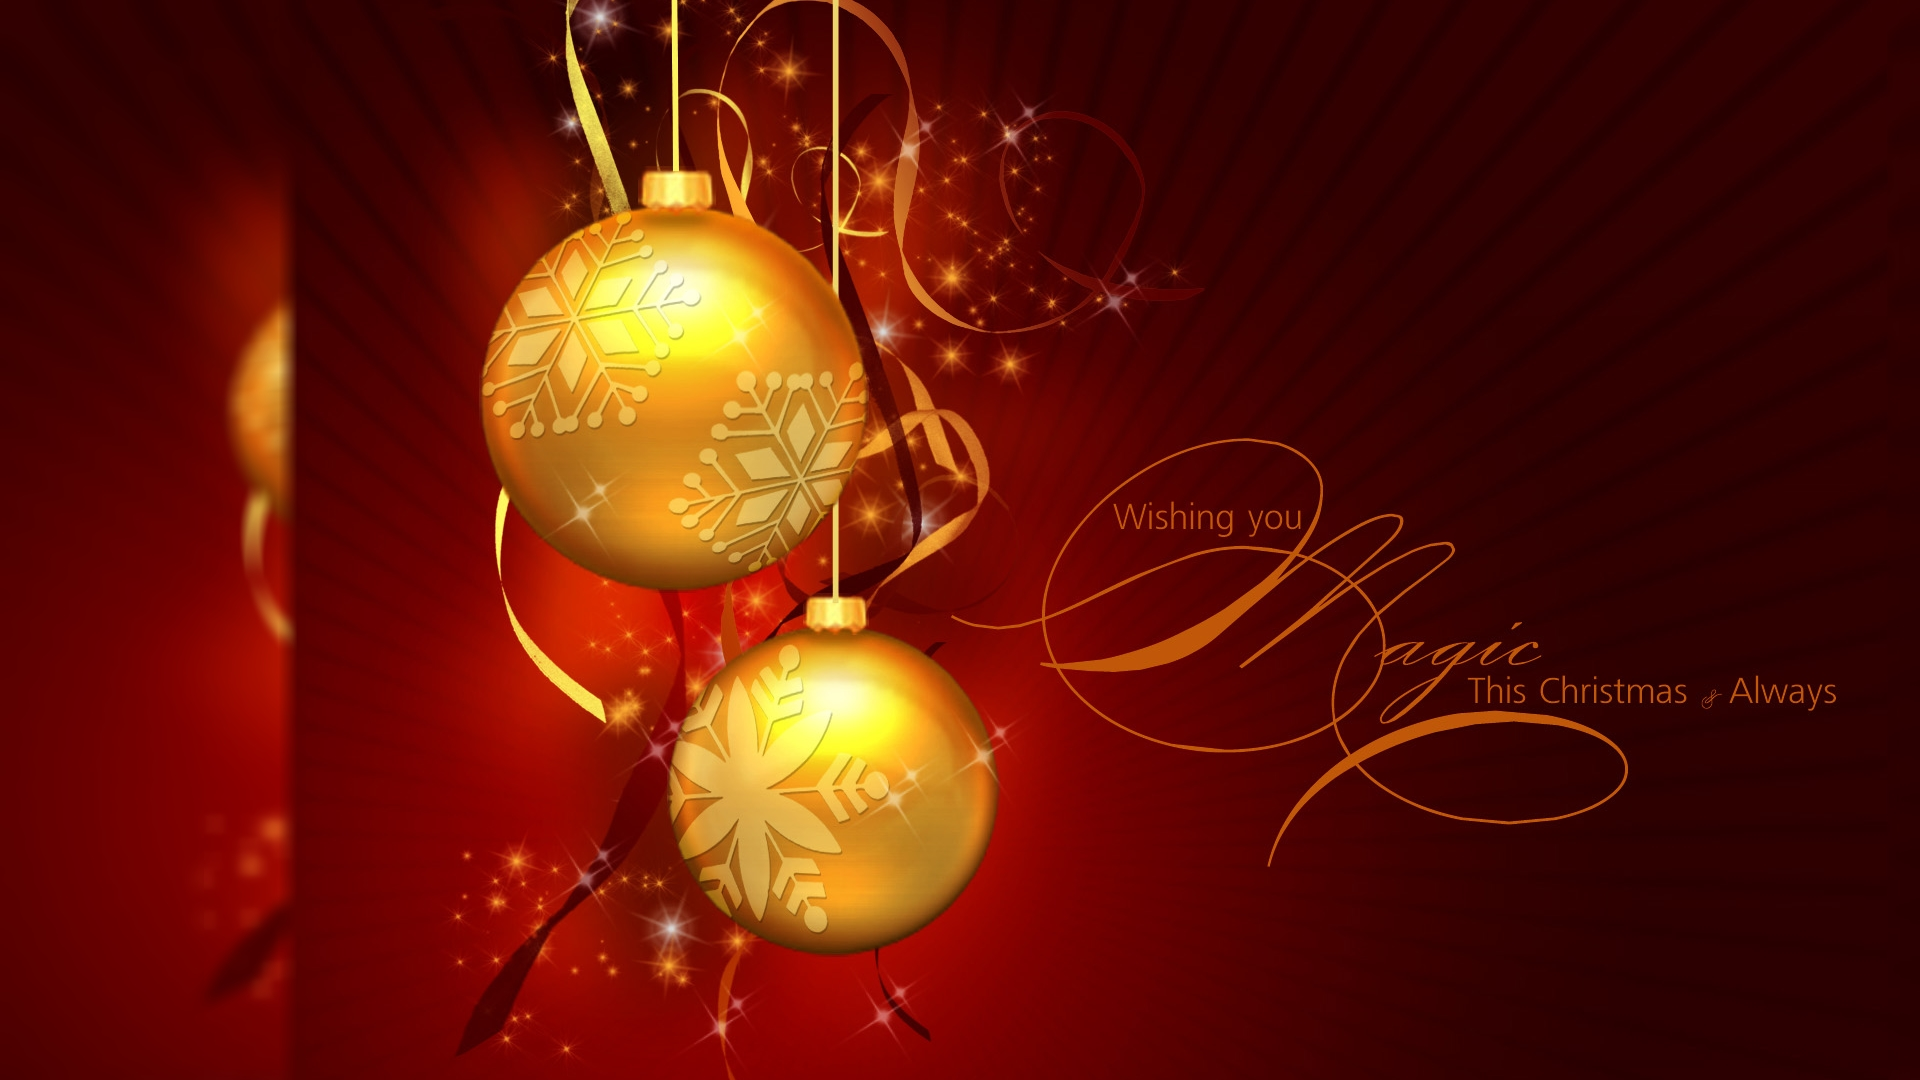 Christmas Desktop Backgrounds For Mac Desktop Wallpapers 1920x1080